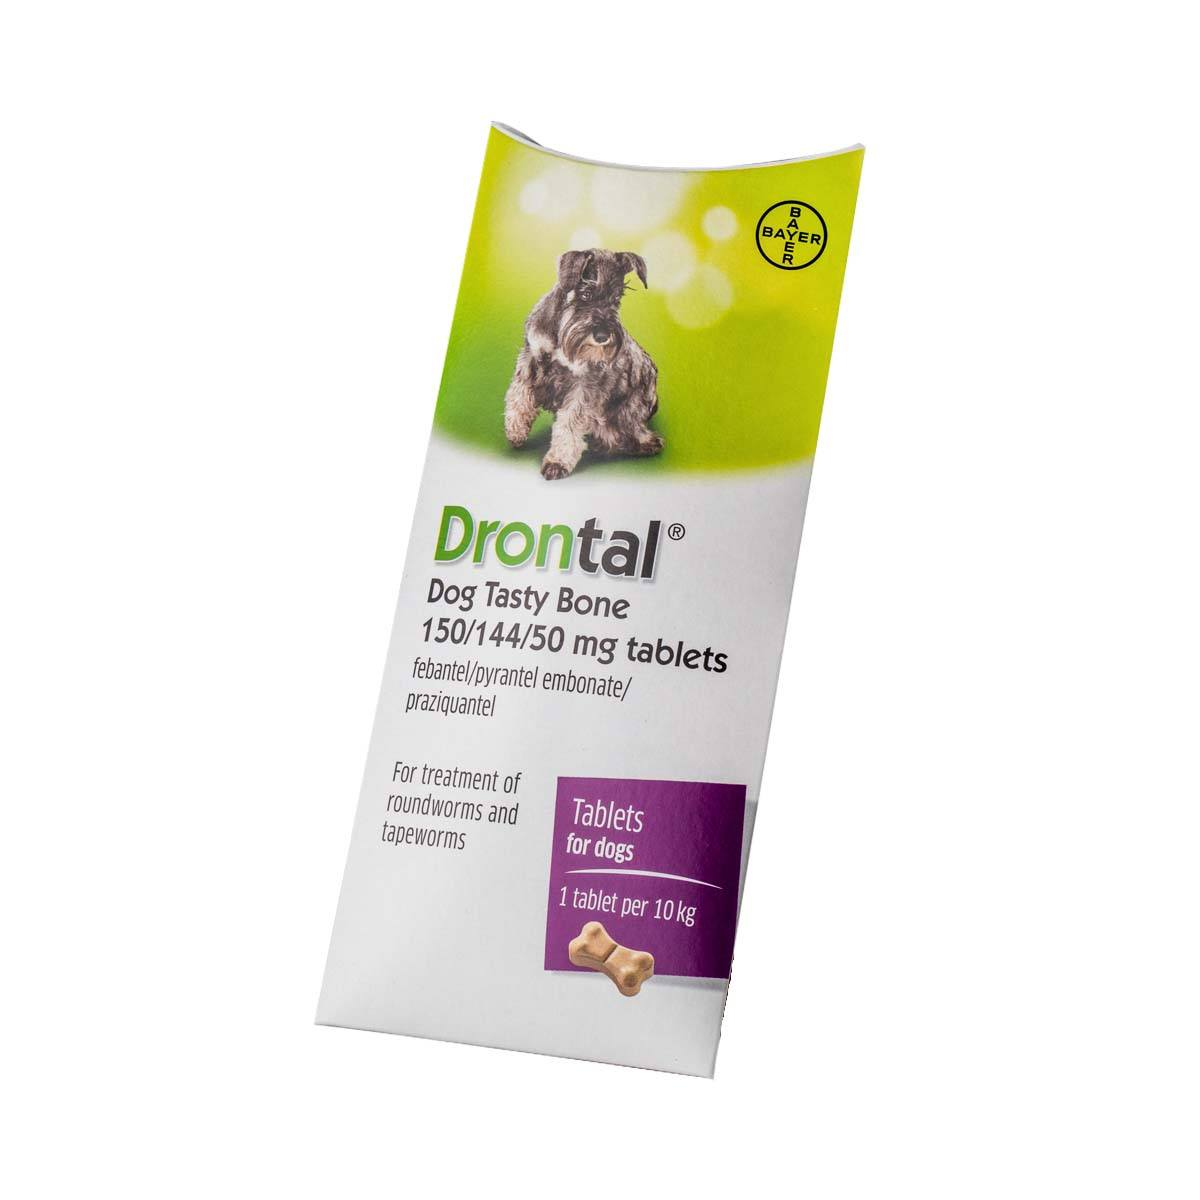 Drontal Dog Tasty Bone